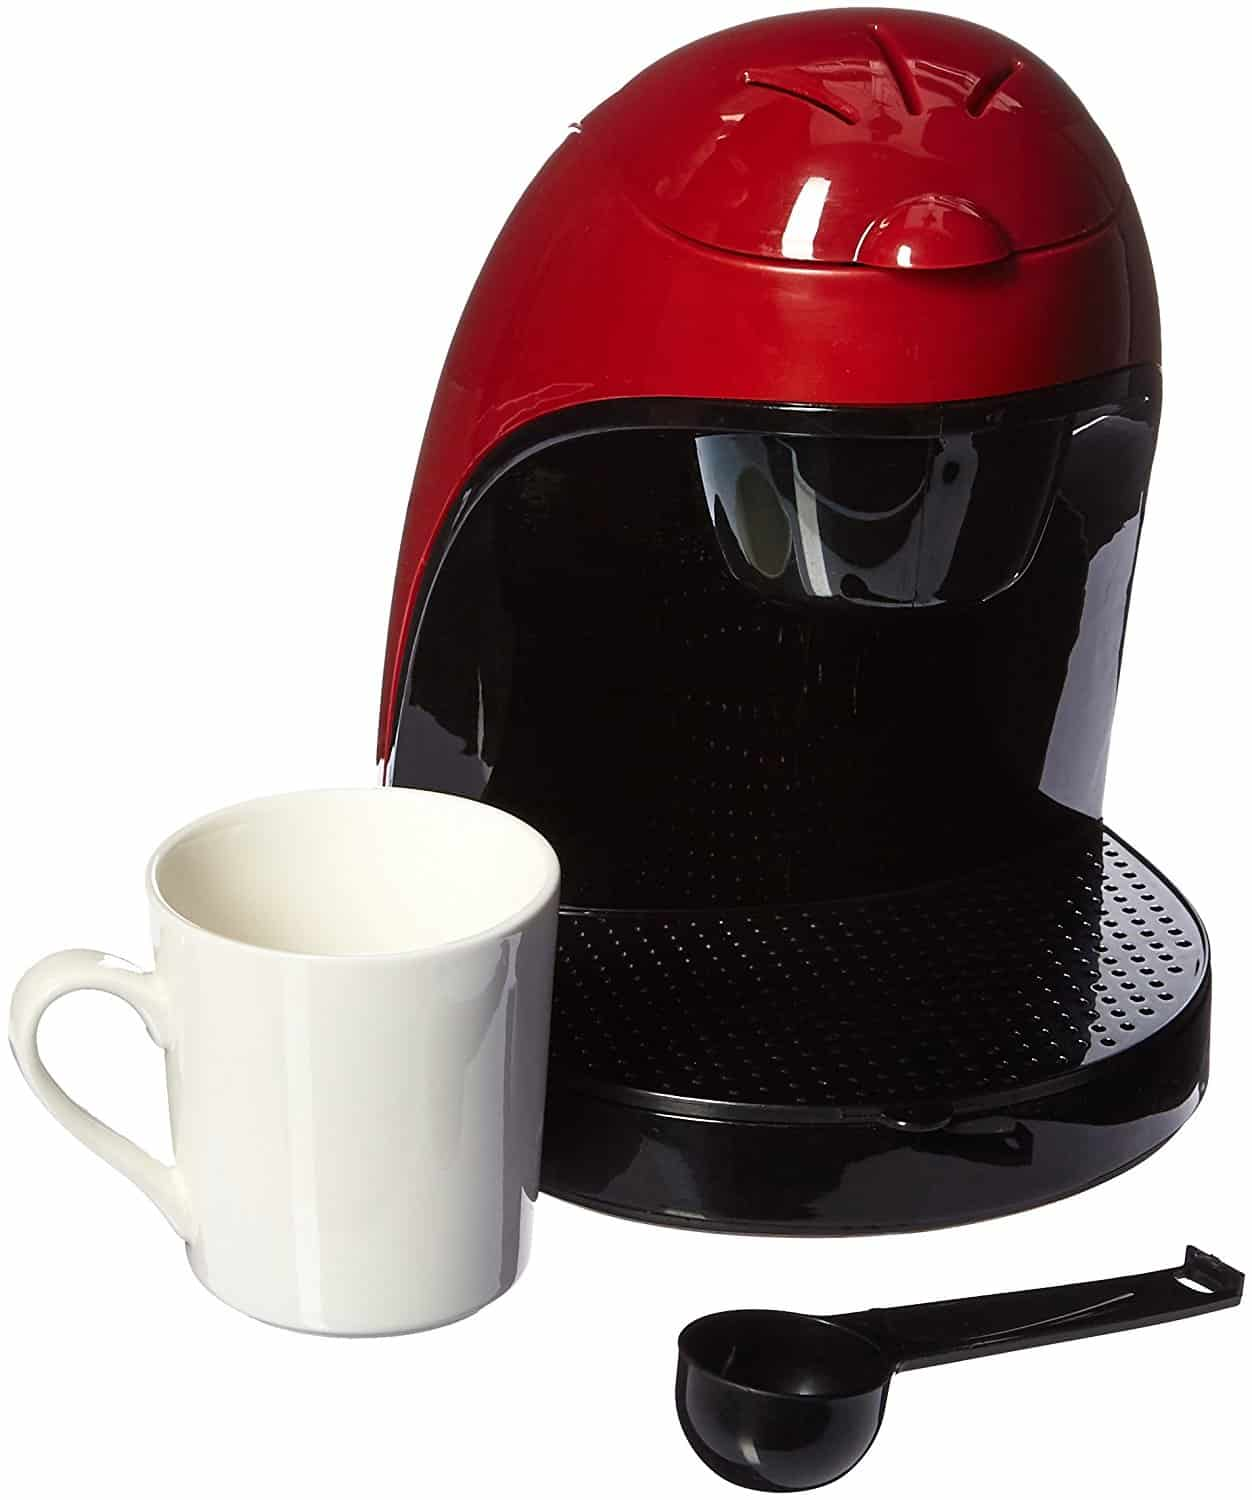 Compact Modern Looking Black And Red Single Serve Coffee Maker By Bwood